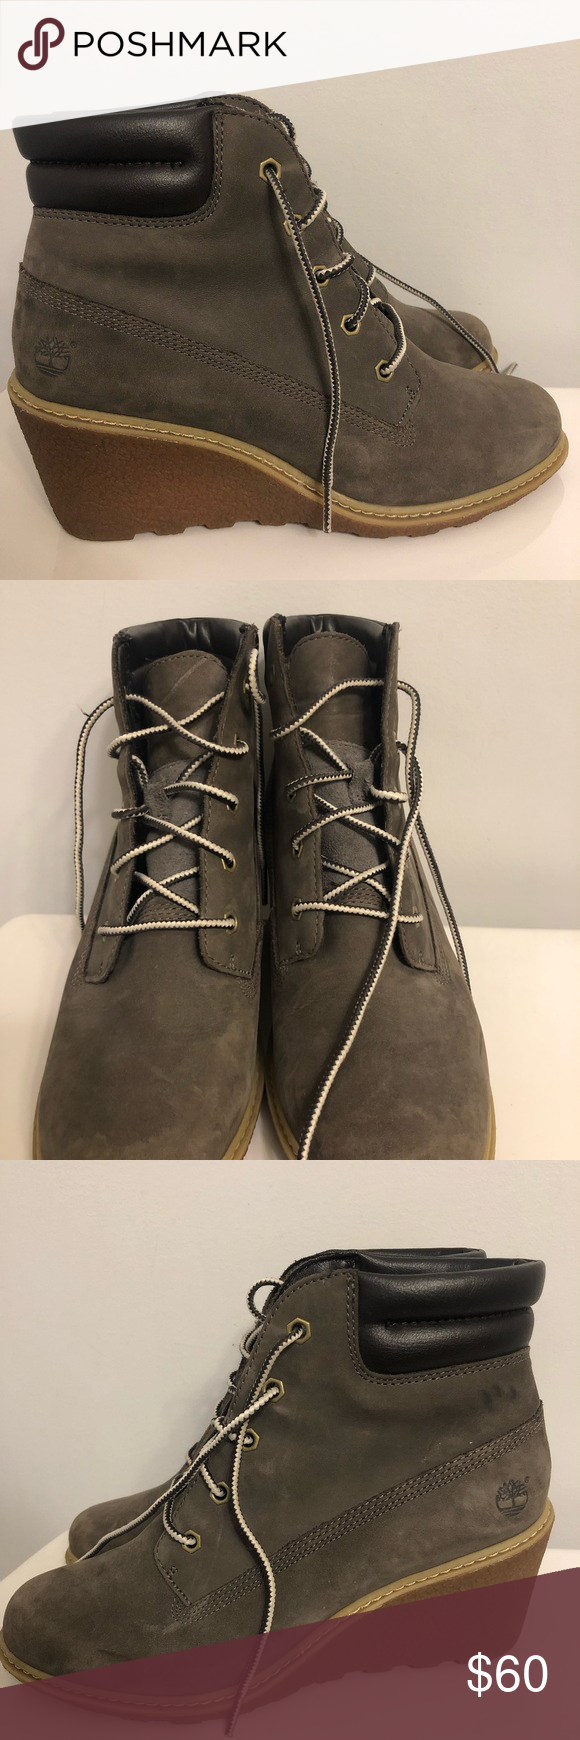 Timberland wedge boots! ???????????? Fall is coming!  These boots look great paired with skinny jeans or joggers! ???? Timberland Shoes Ankle Boots & Booties #skinnyjeansandankleboots